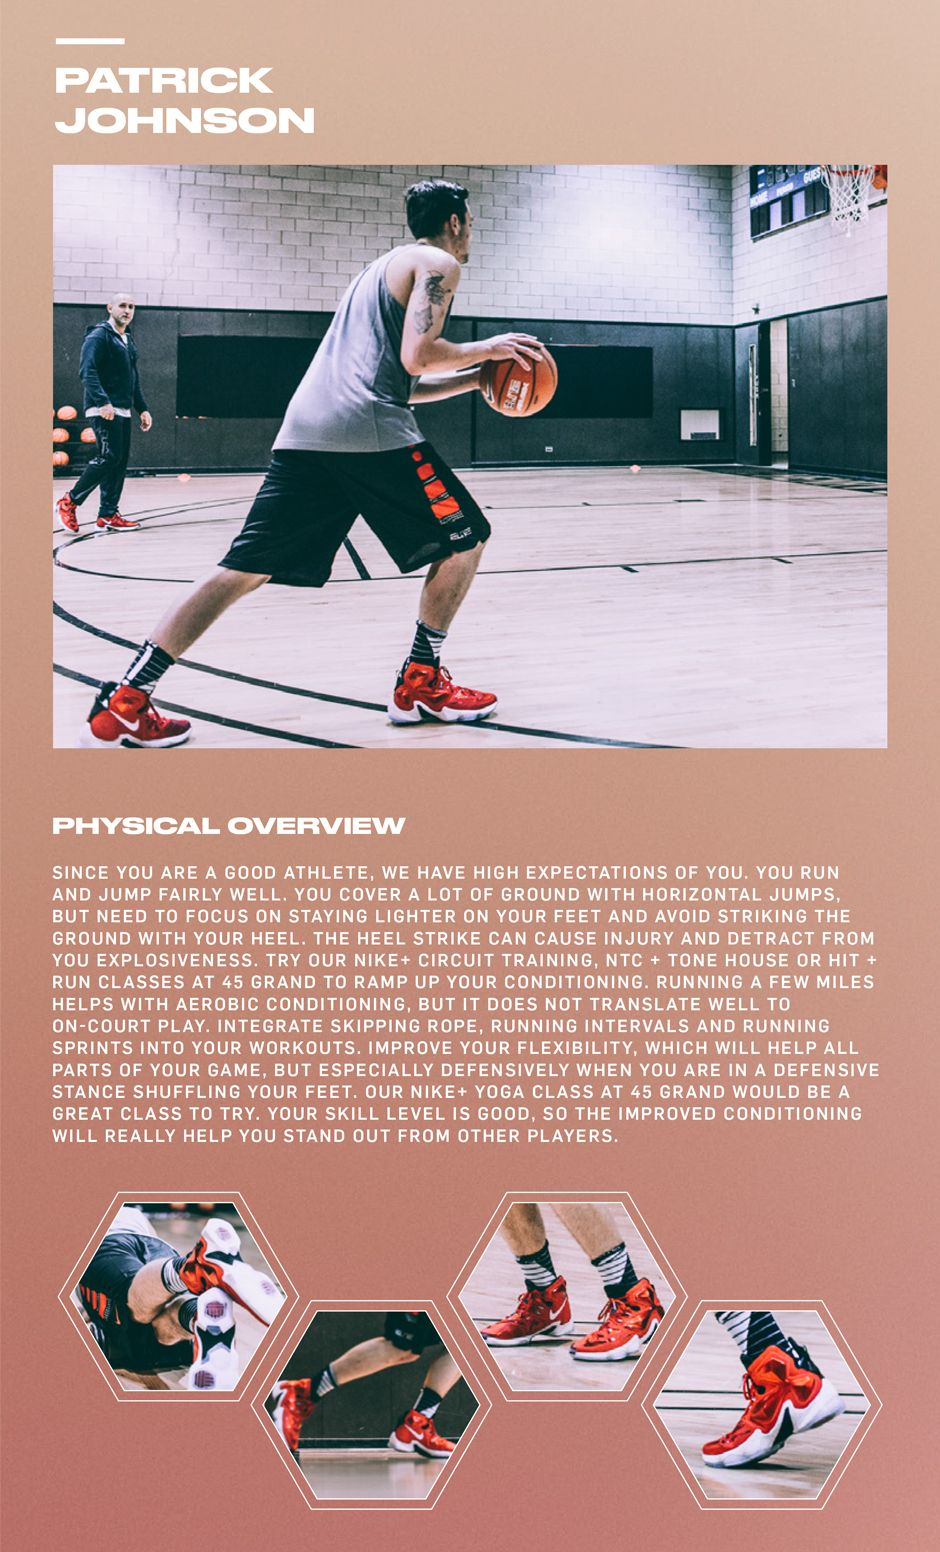 Here's Nike Basketball and Idan Ravin's critique of my workout session.